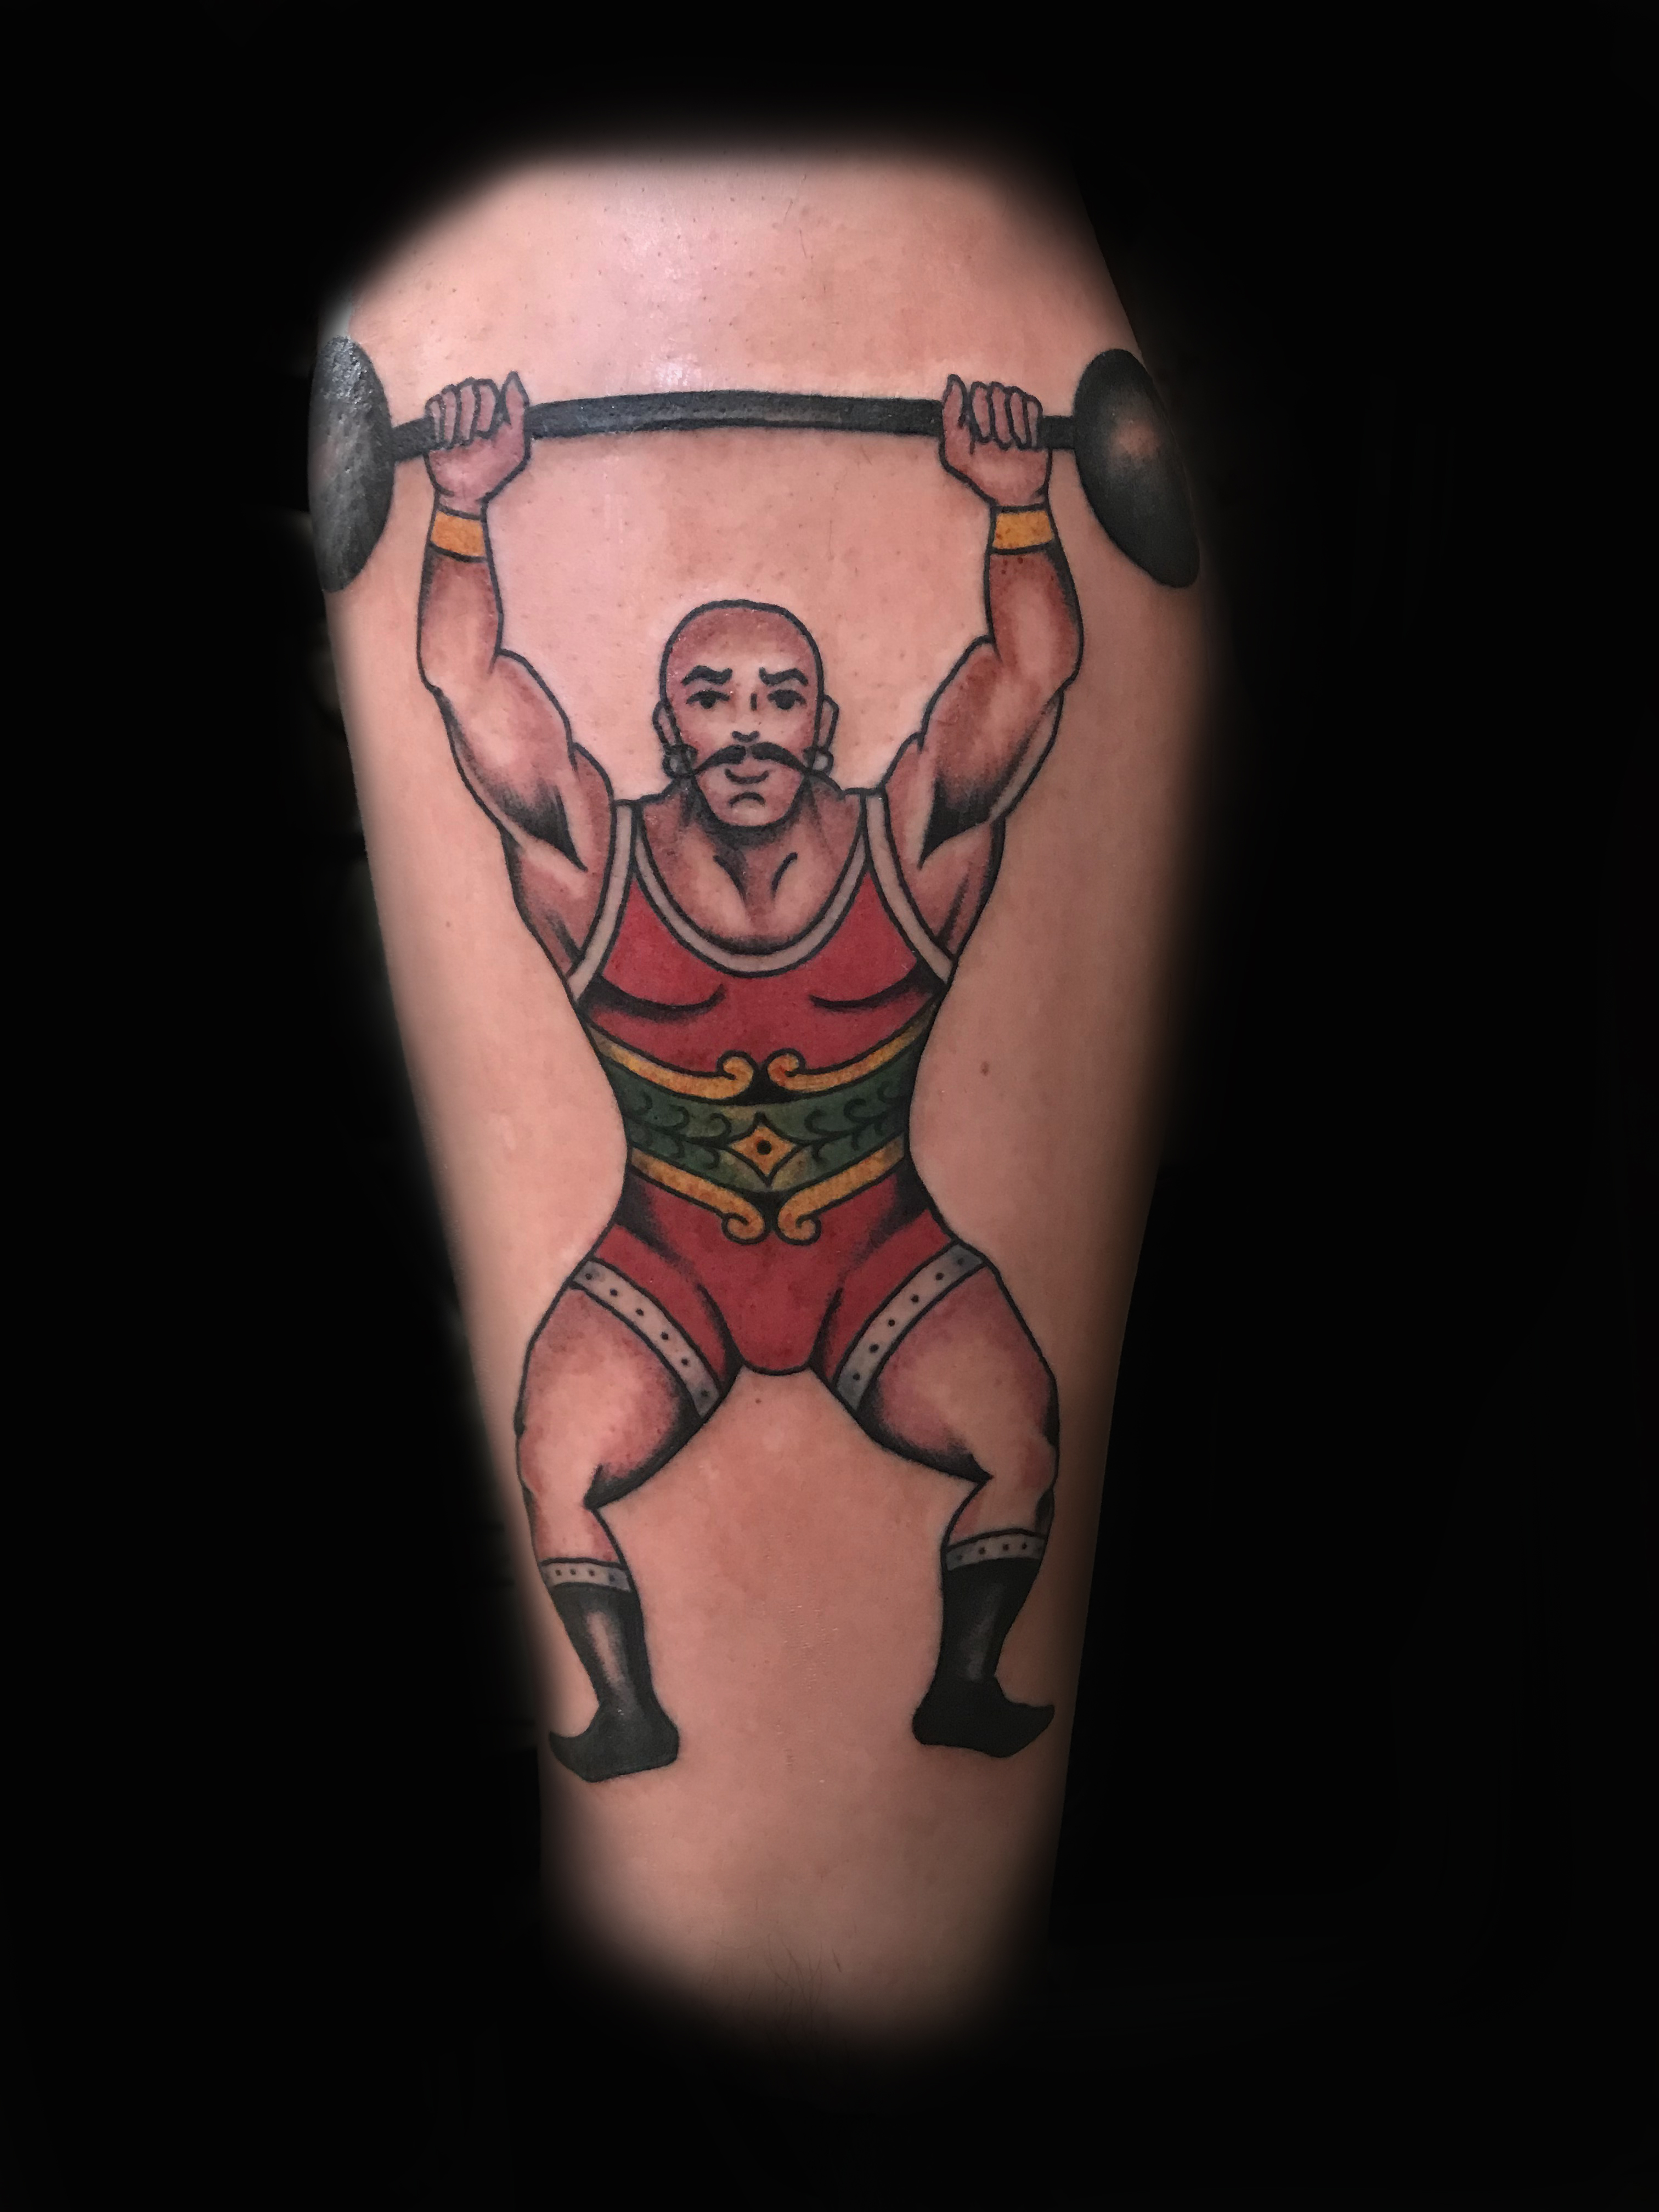 Ivan-Herrera-Tattoo-Berlin-Traditional-Classic-Strong-Man-Circus